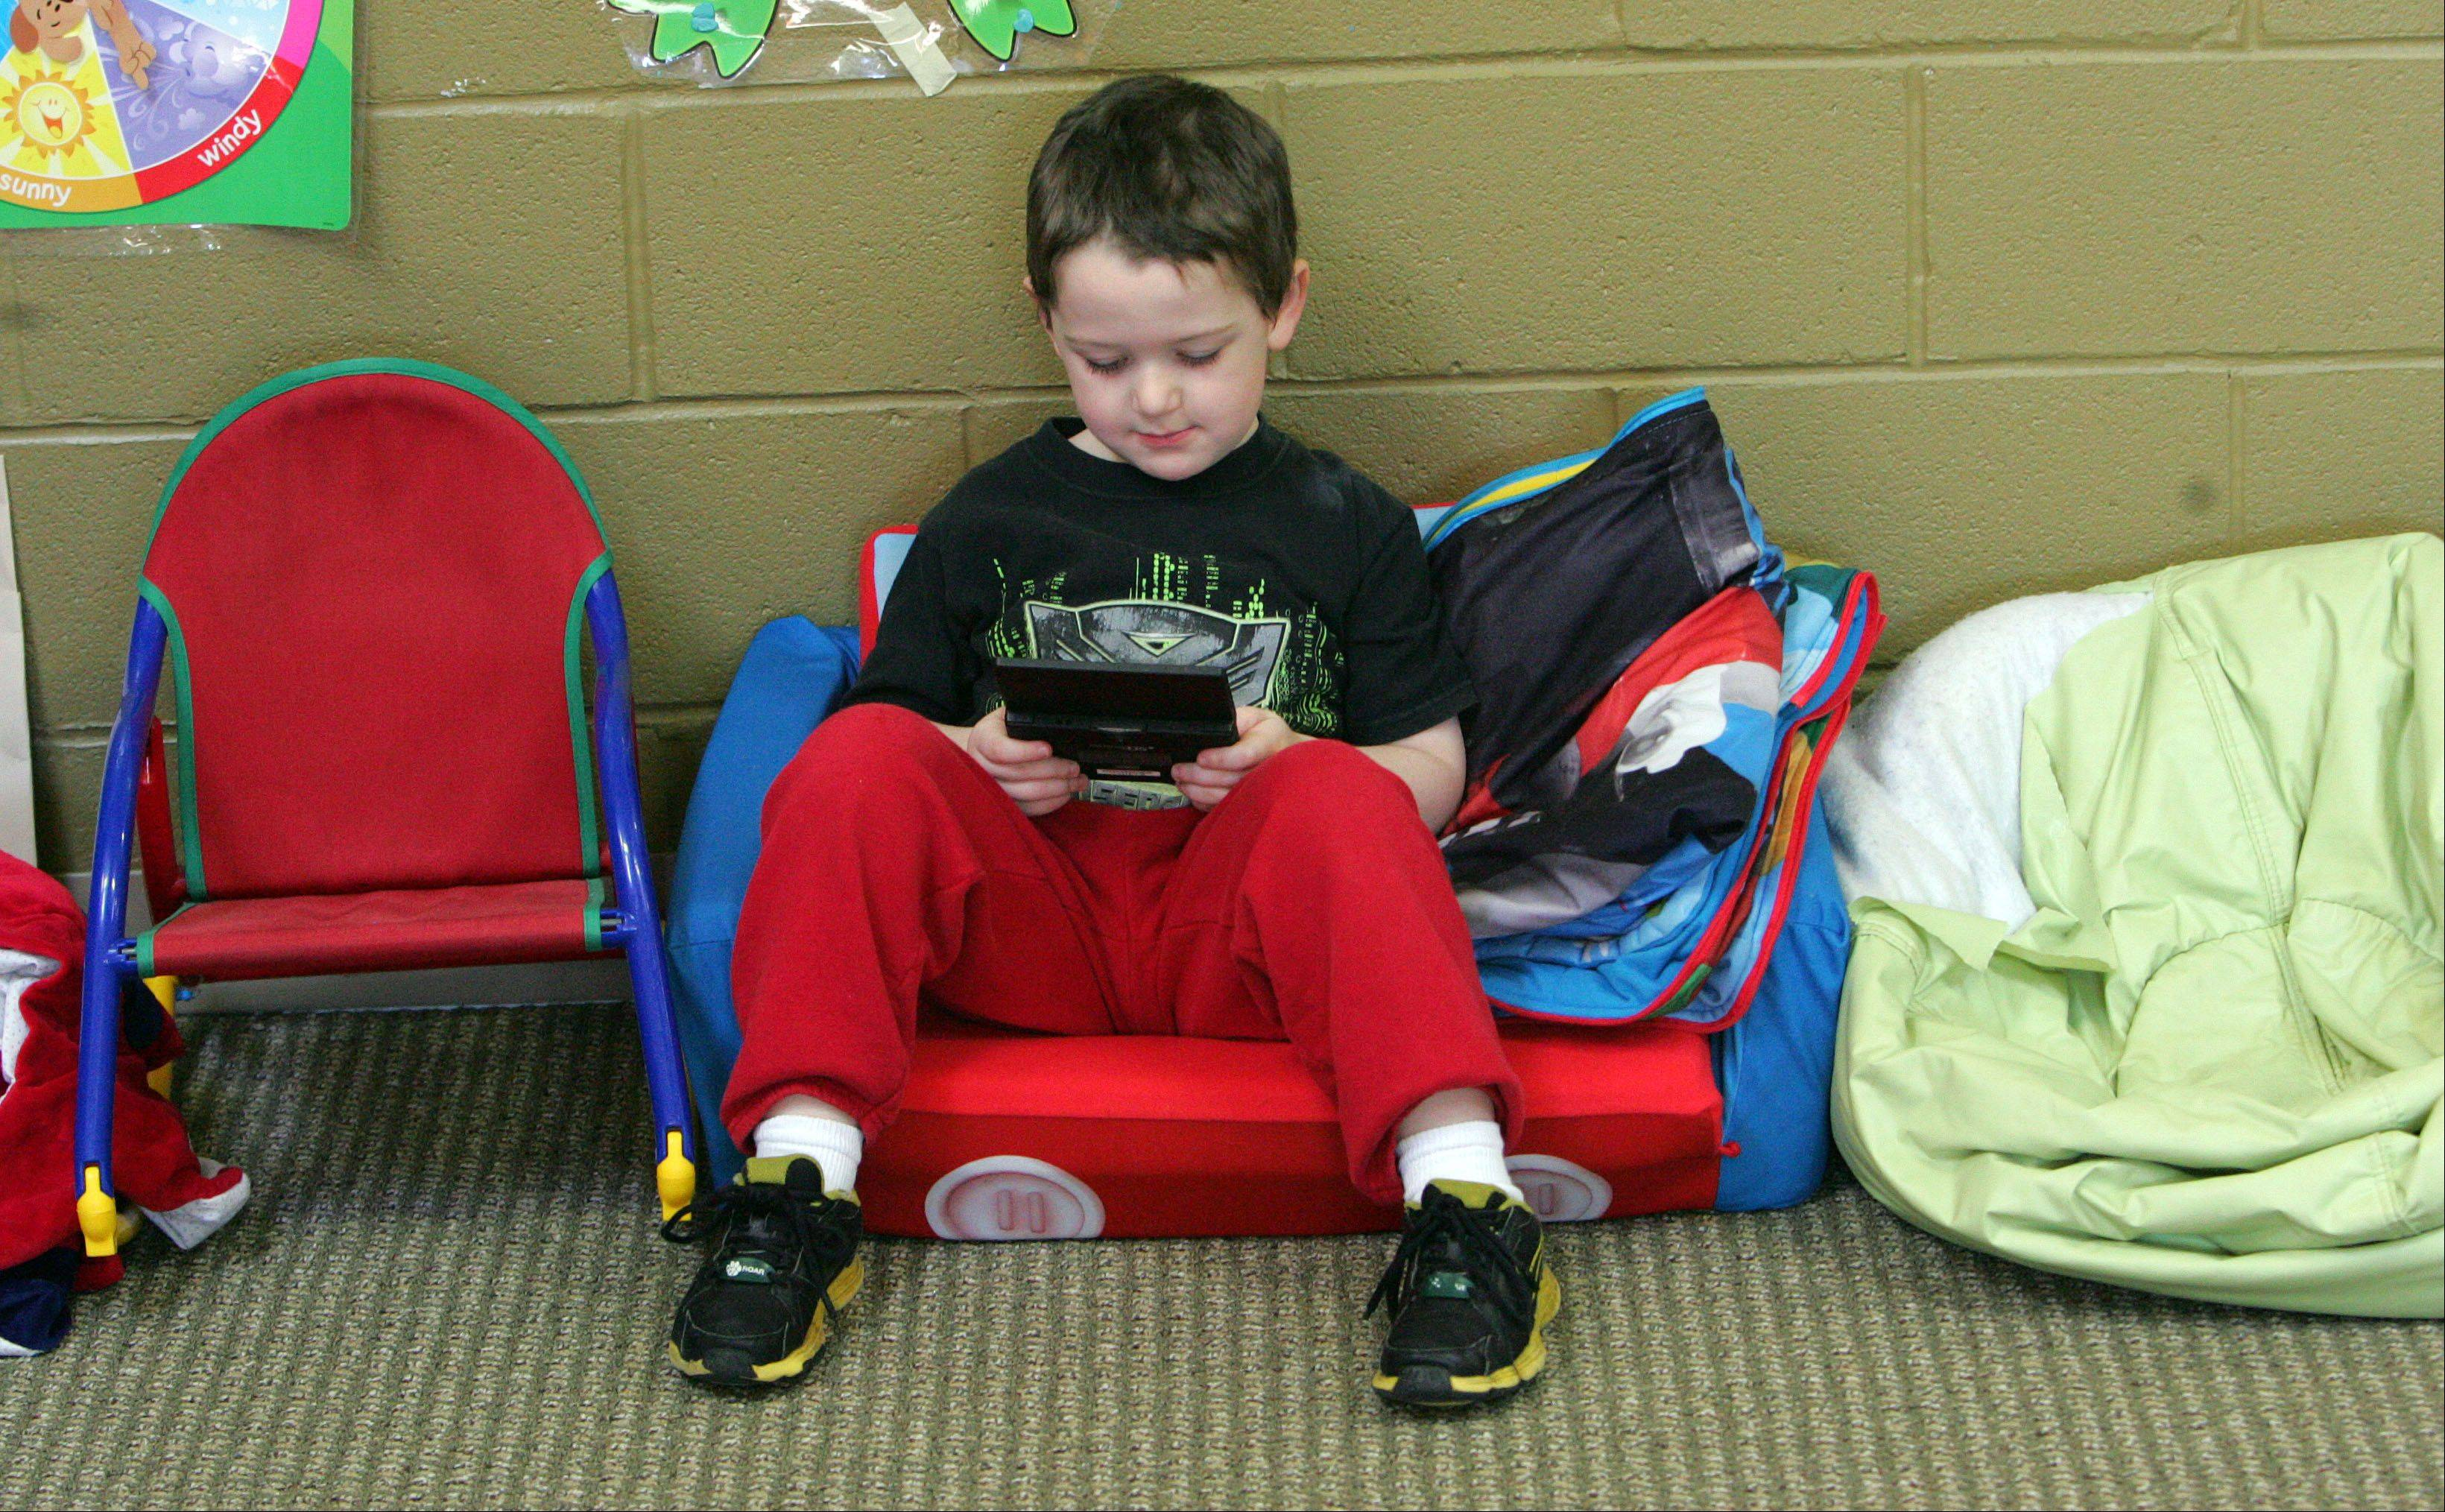 4-year-old Oliver Blennis of Grayslake plays a computer game during Strike Camp at the Grayslake Park District Recreation Center Thursday morning. The Strike Camp will be open today, too.